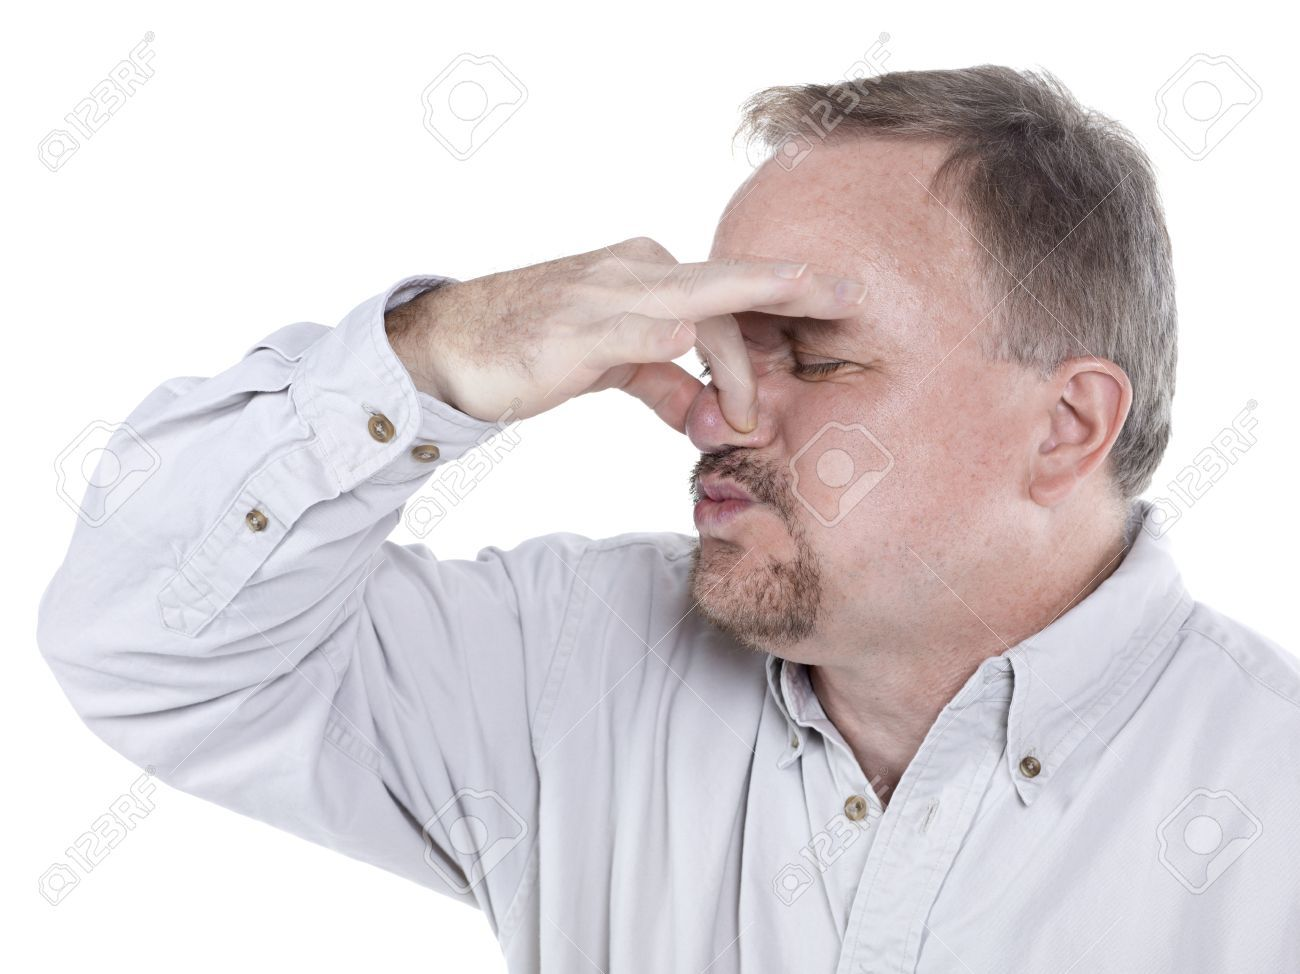 16993040-portrait-of-an-old-man-holding-his-nose-tight-to-plug-out-the-horrible-smell.jpg.b51218c298a948acef12fac908b5fb7e.jpg